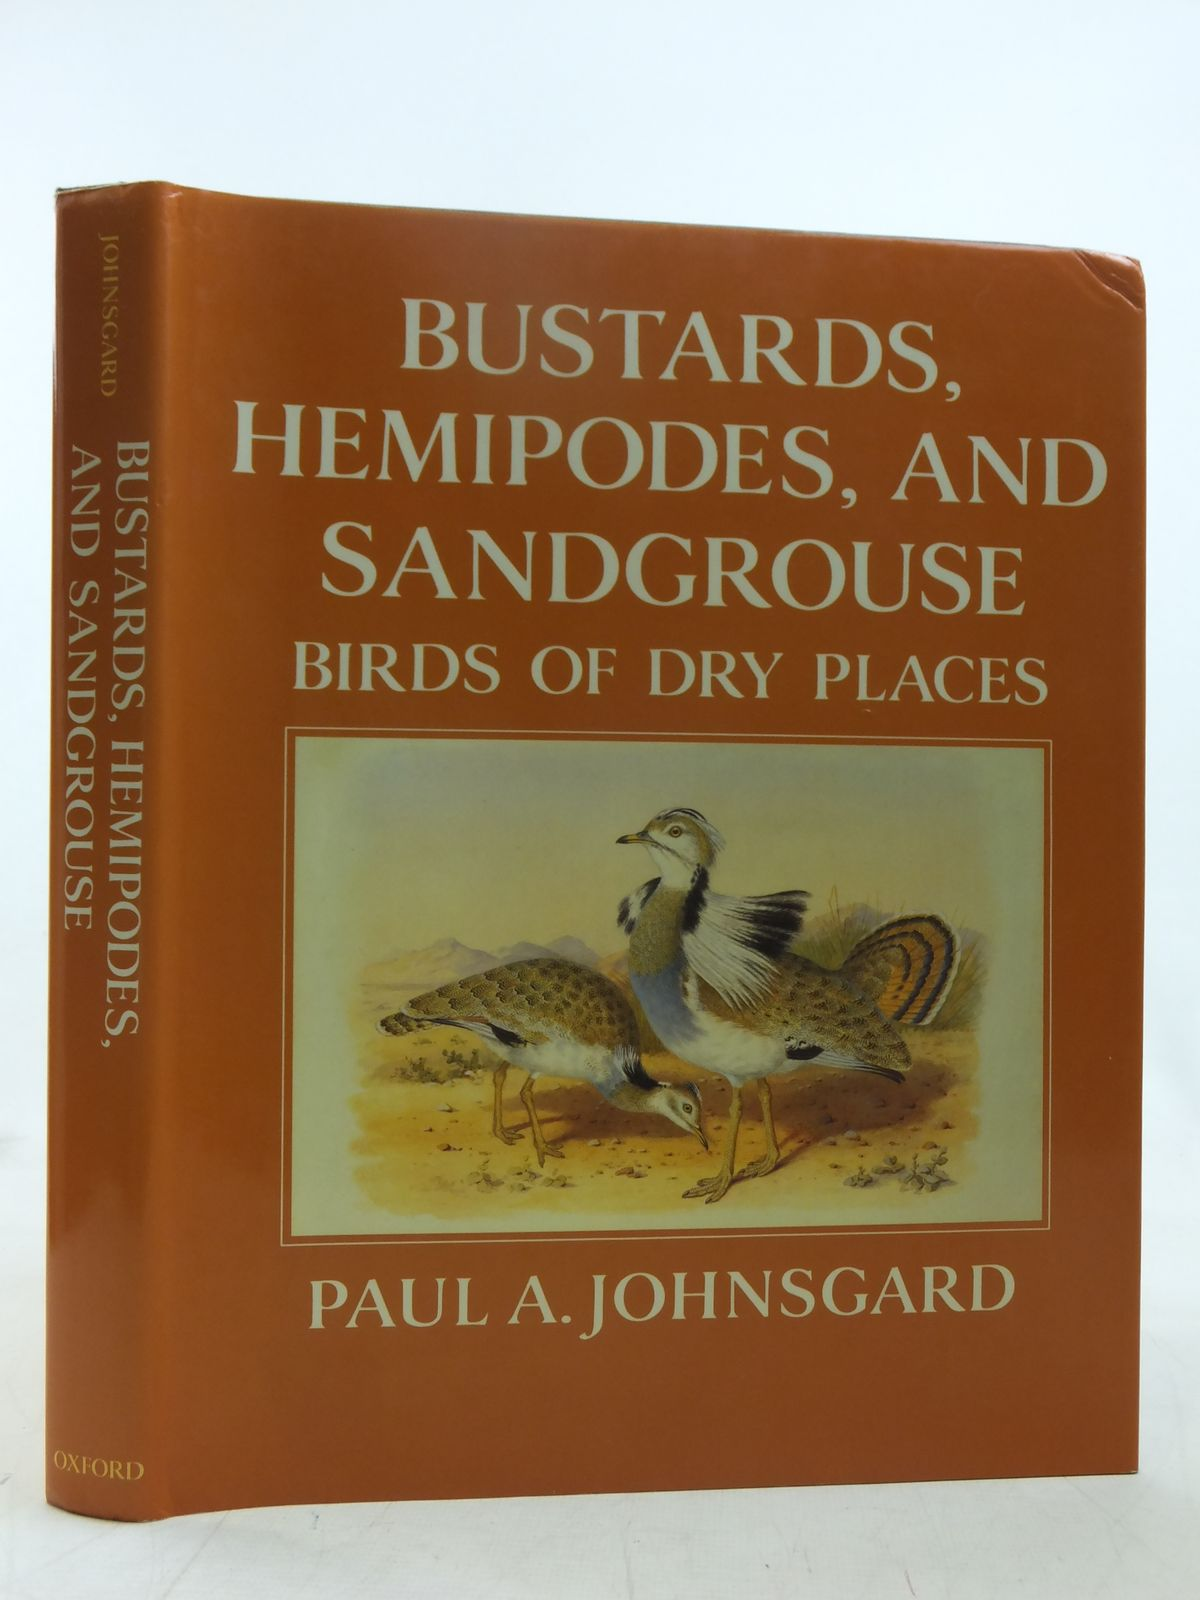 Photo of BUSTARDS, HEMIPODES, AND SANDGROUSE: BIRDS OF DRY PLACES written by Johnsgard, Paul A. illustrated by Jones, Henry published by Oxford University Press (STOCK CODE: 1607493)  for sale by Stella & Rose's Books